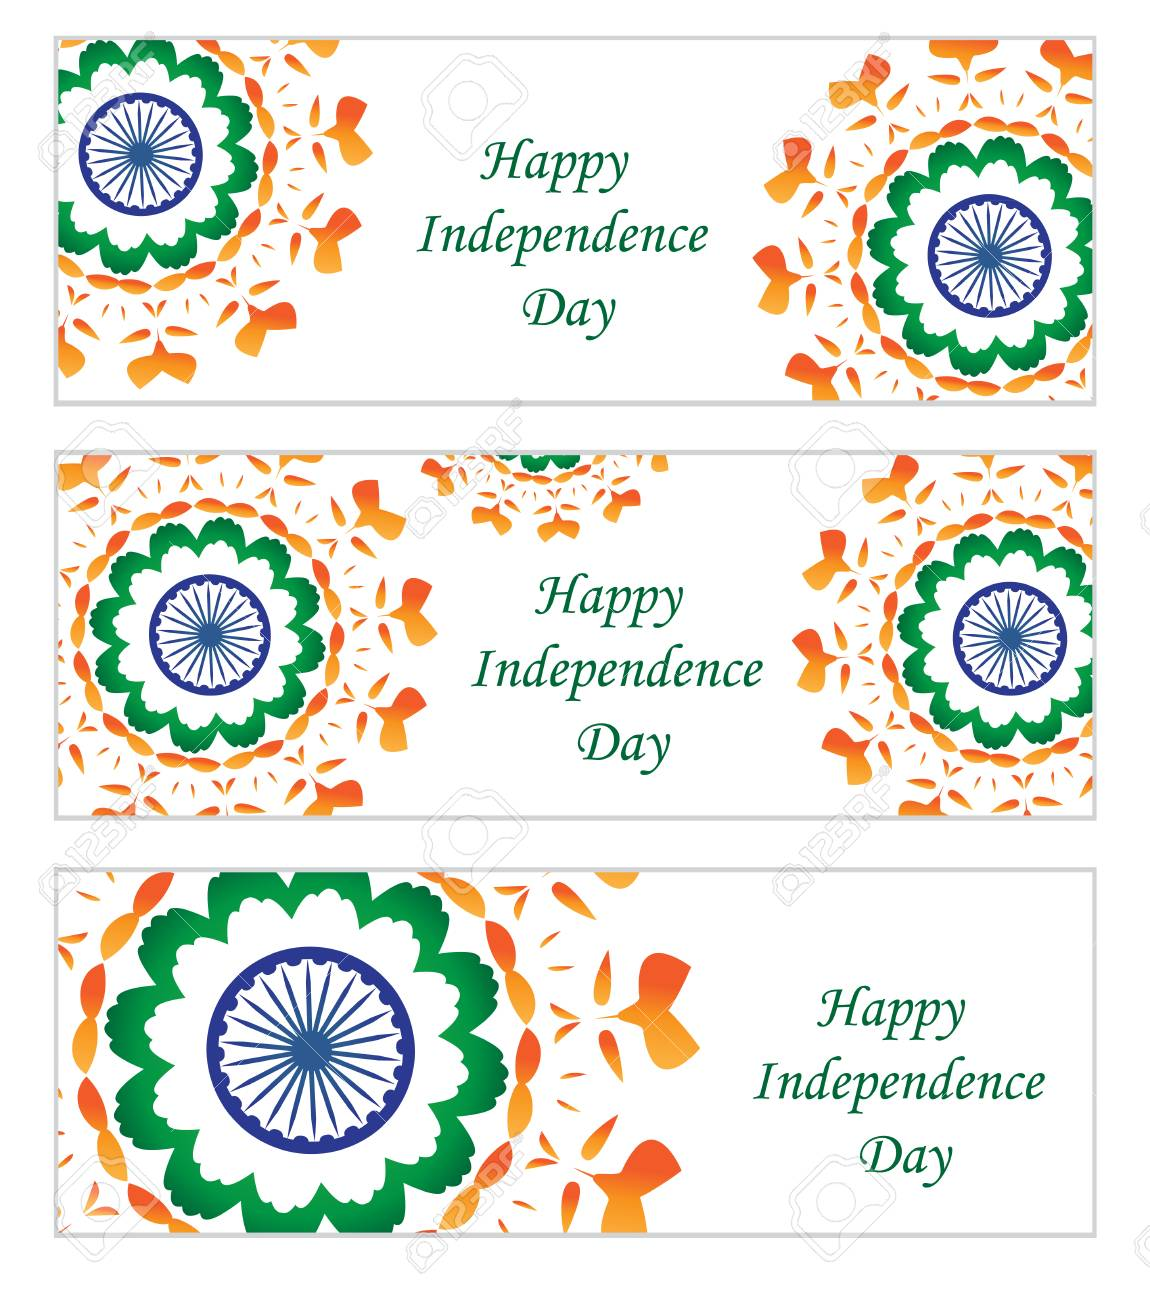 Happy India Independence Day Independence Day India Greeting